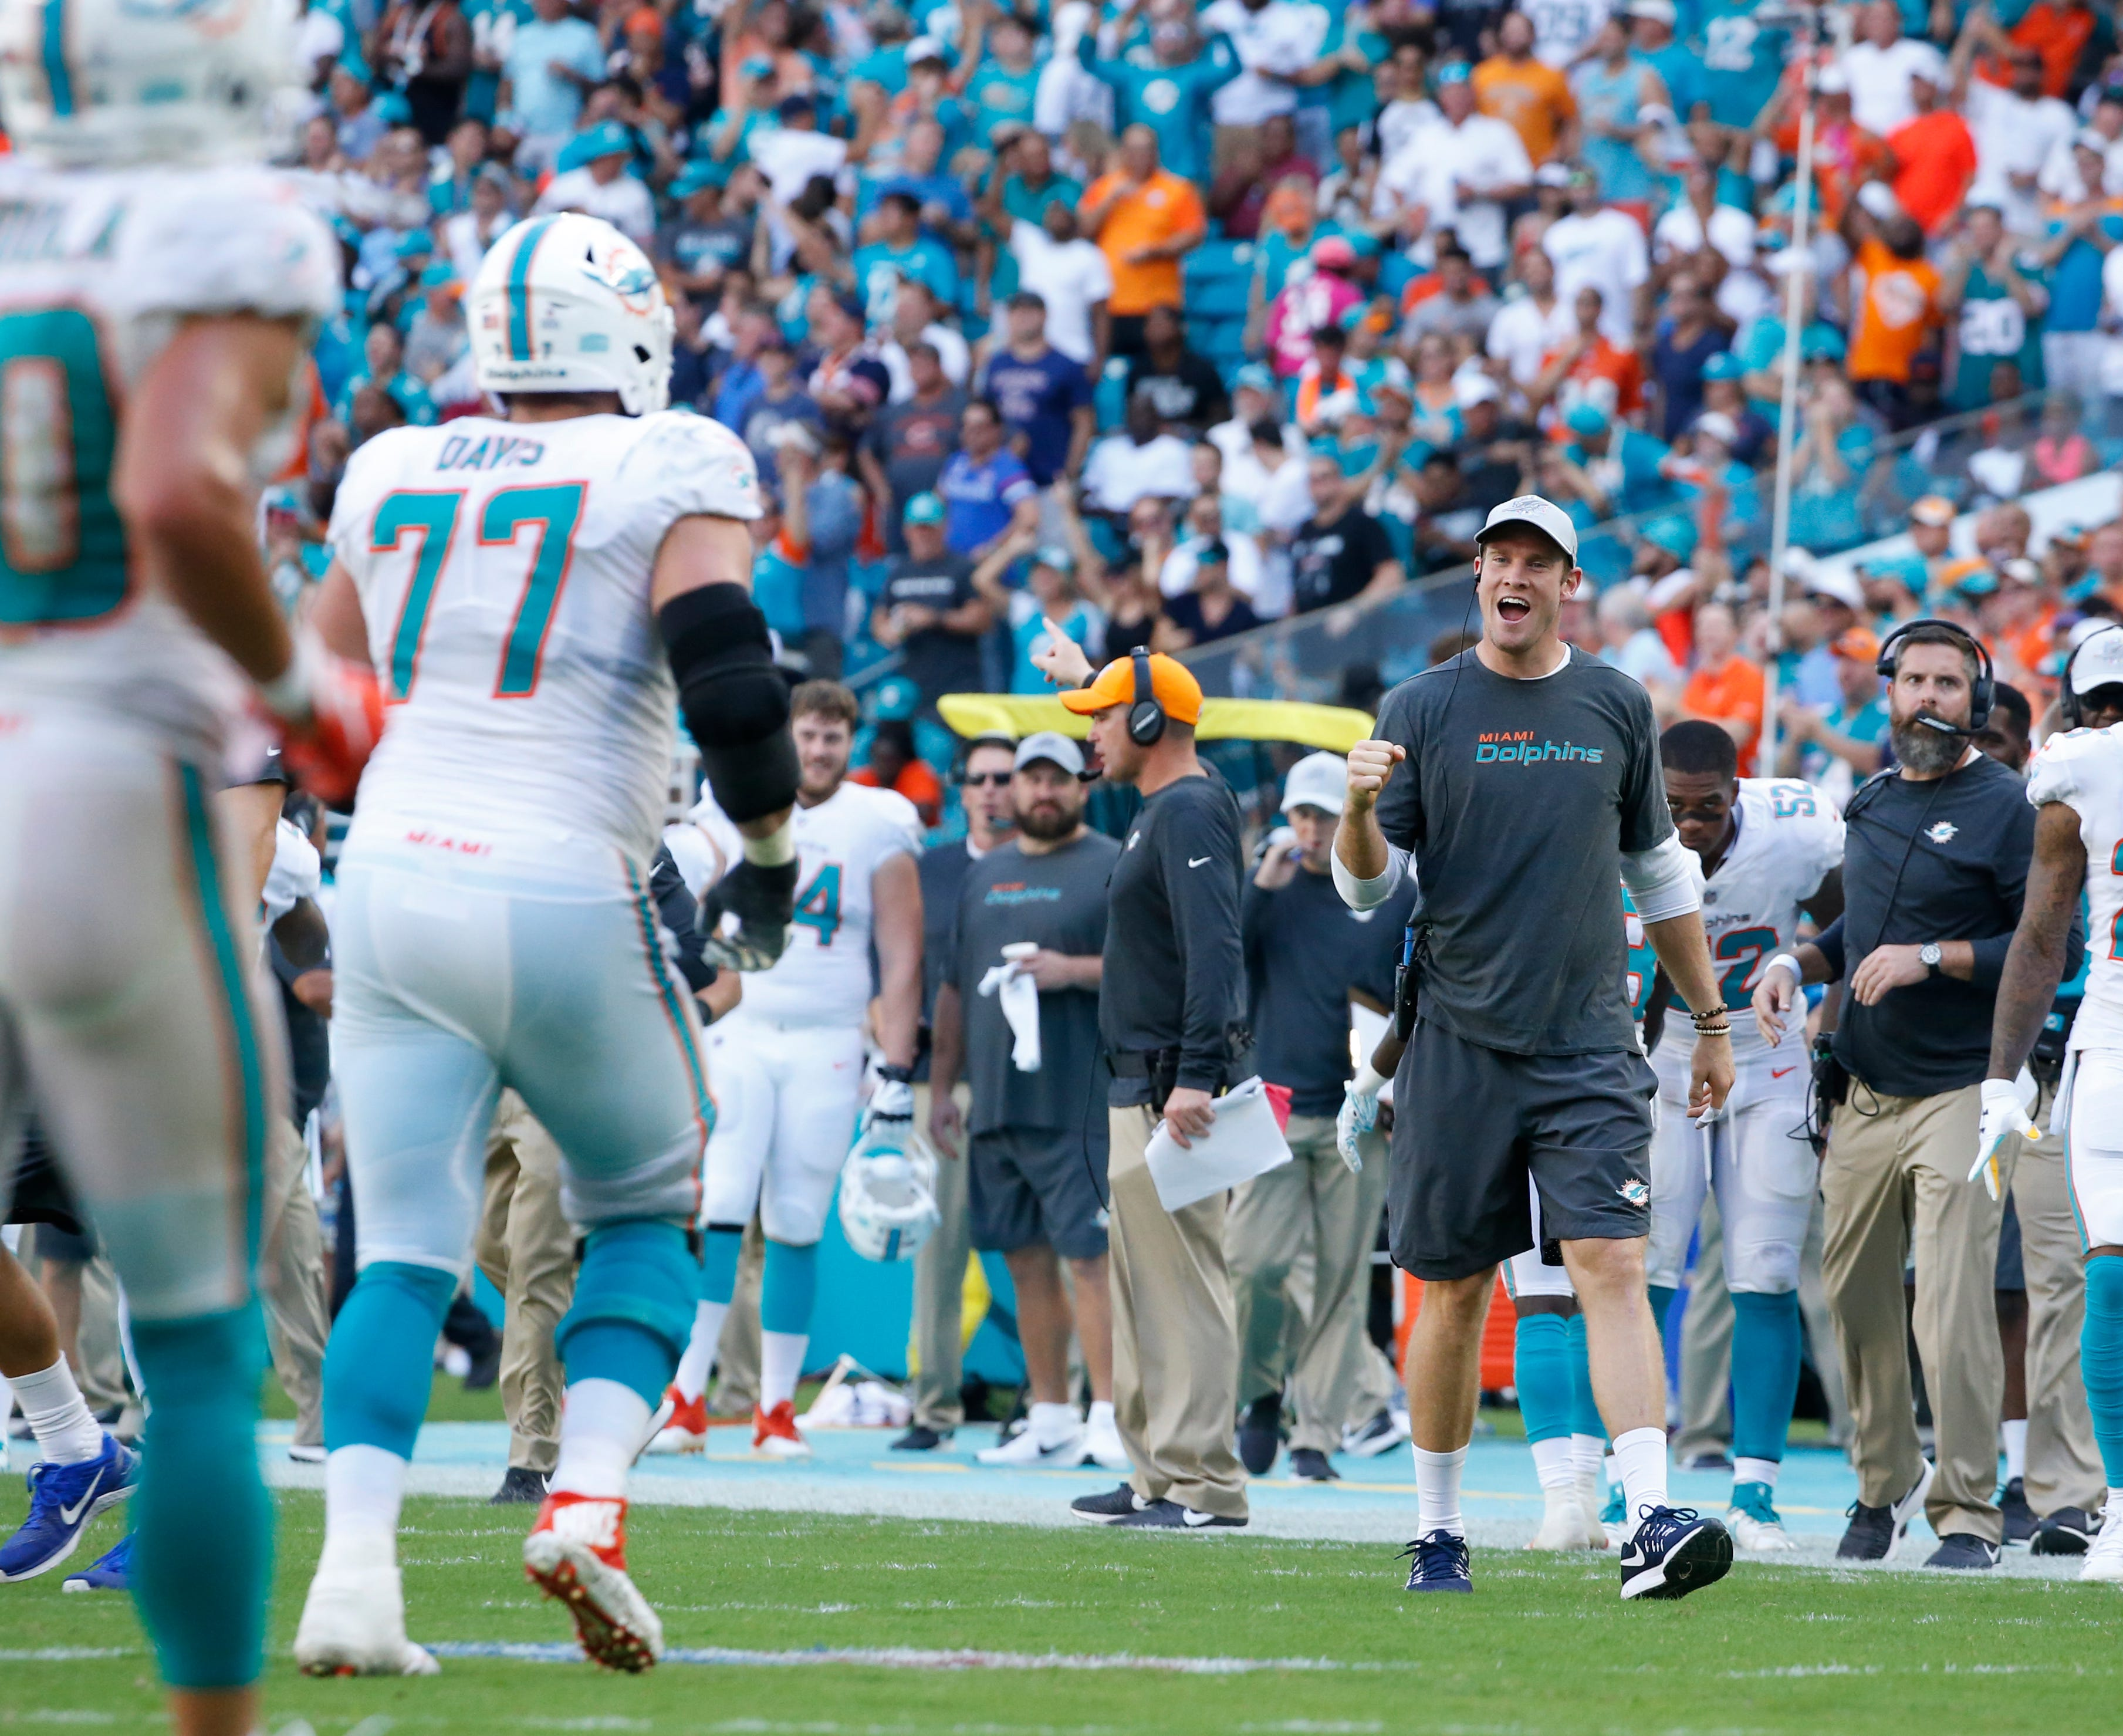 Dolphins at .500 as usual with faint playoff hopes